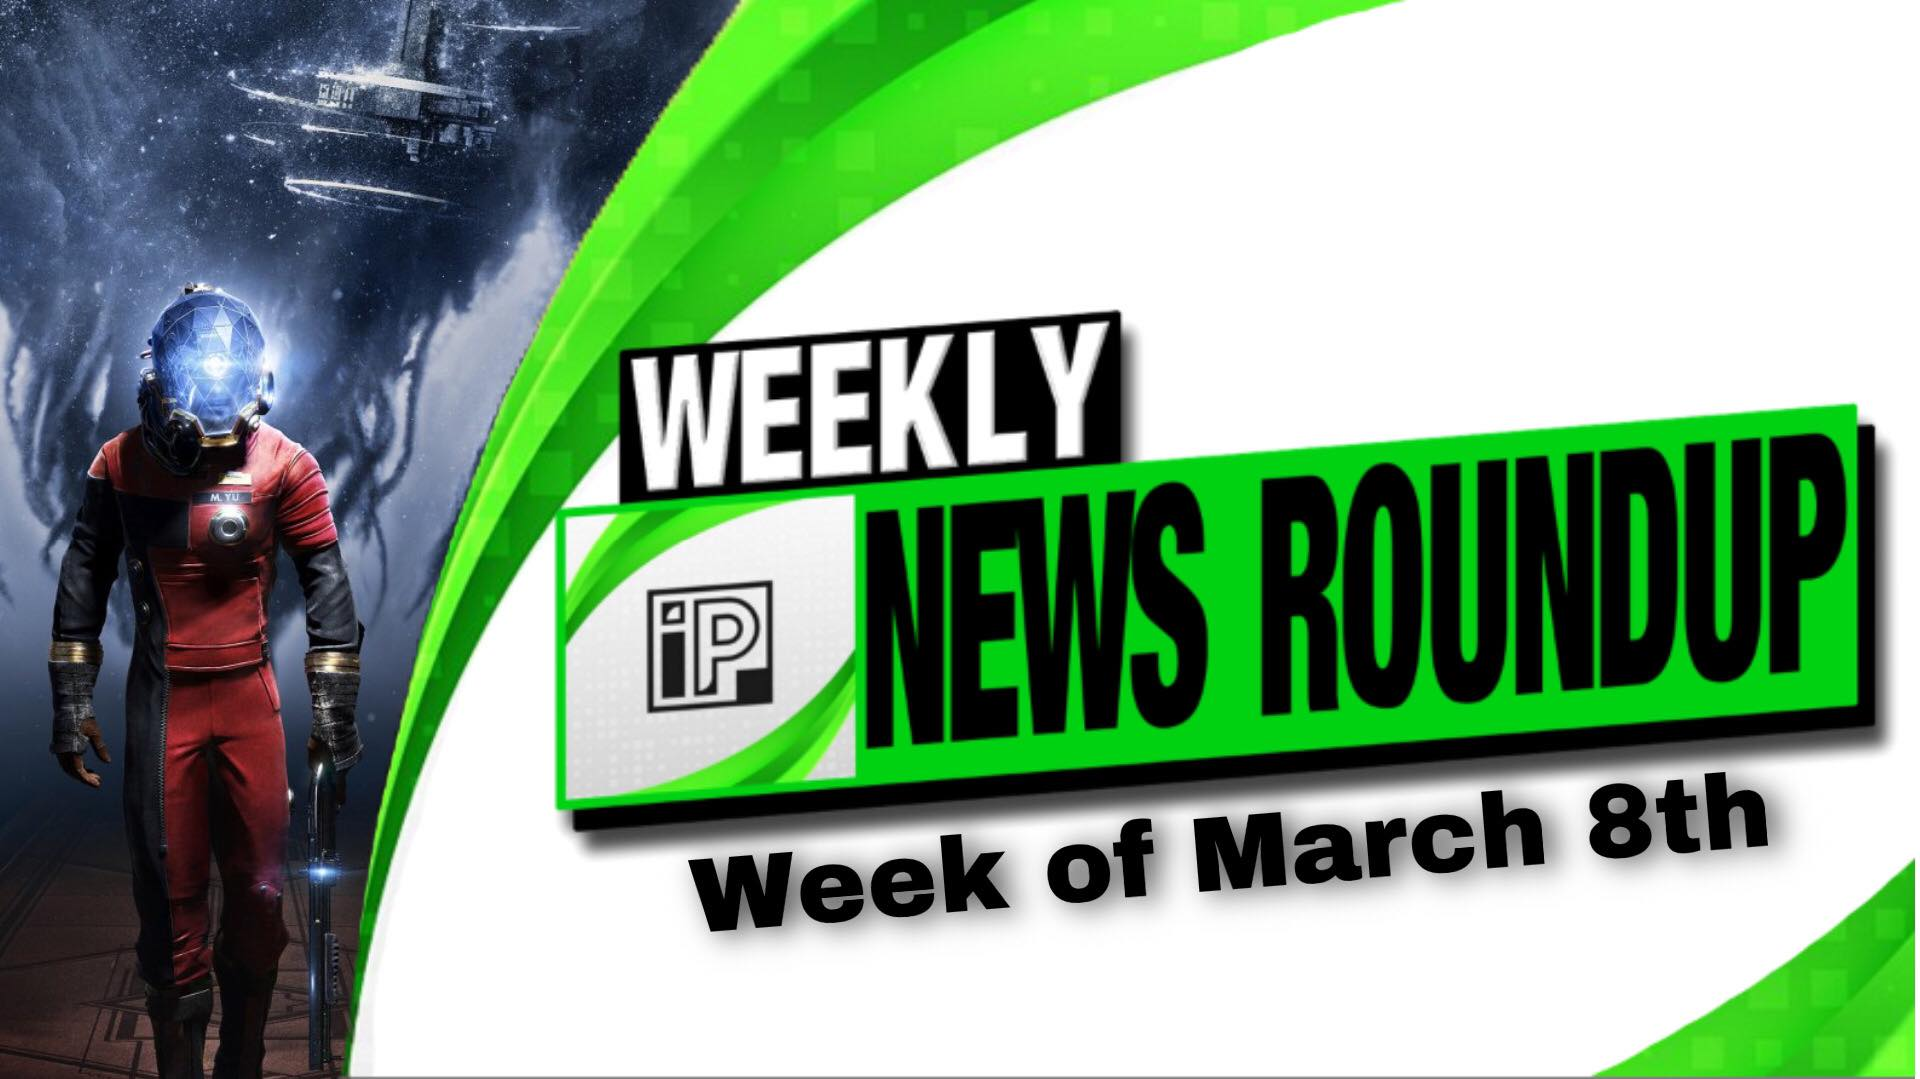 Weekly News Roundup – Week of March 8th